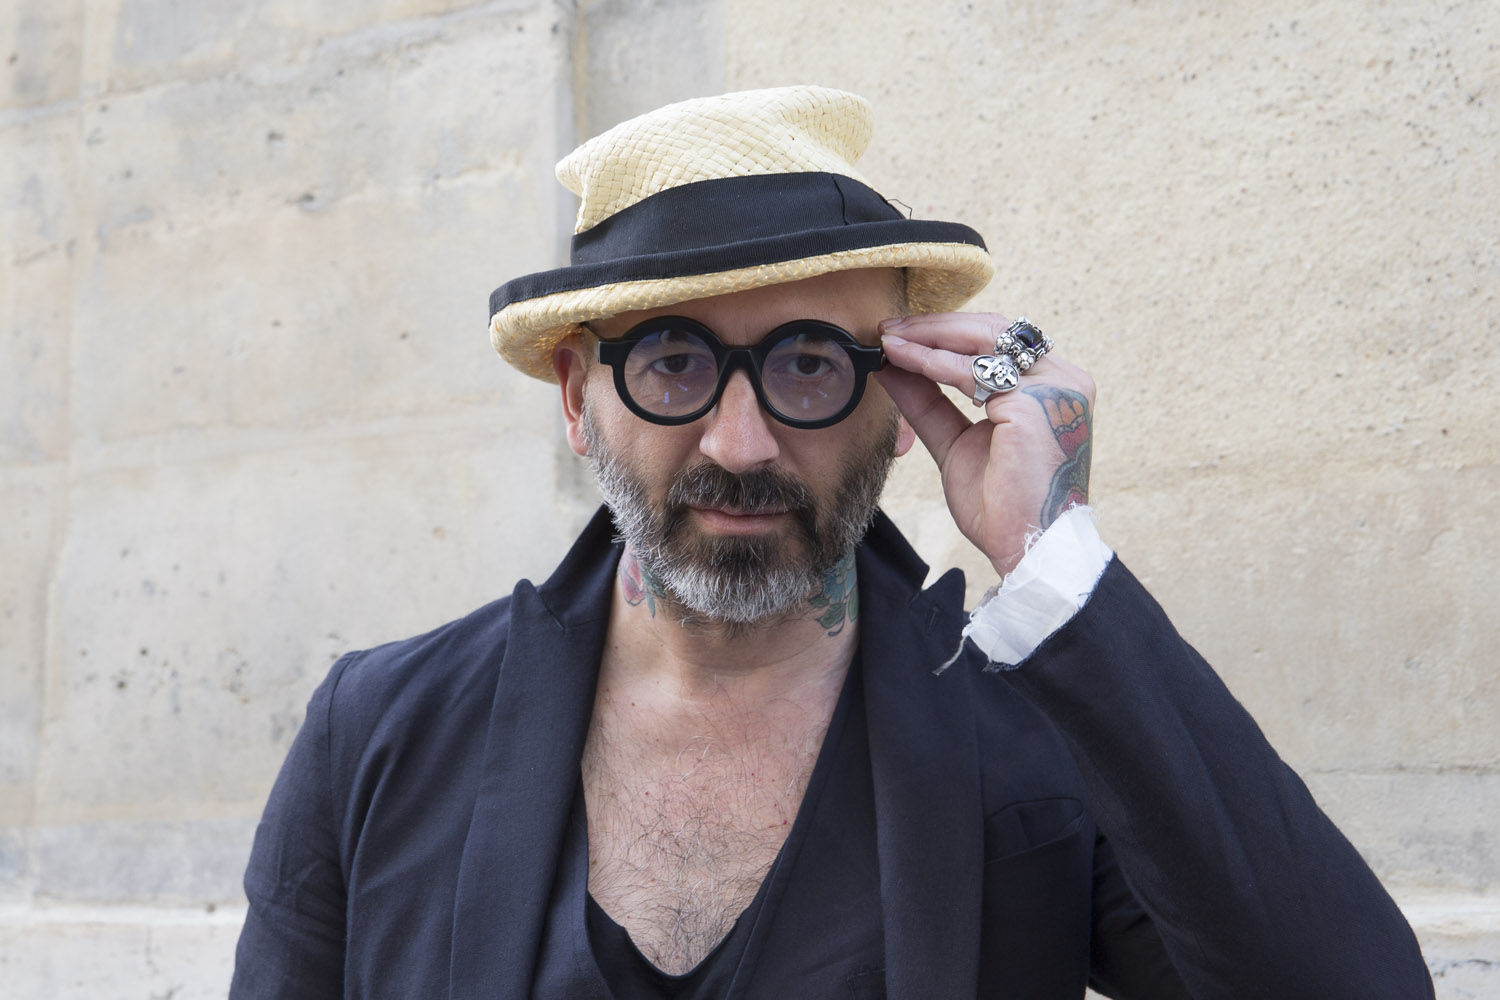 Marc wears clothes, hat and rings by Nostra Santissima, and glasses by Kuboraum.